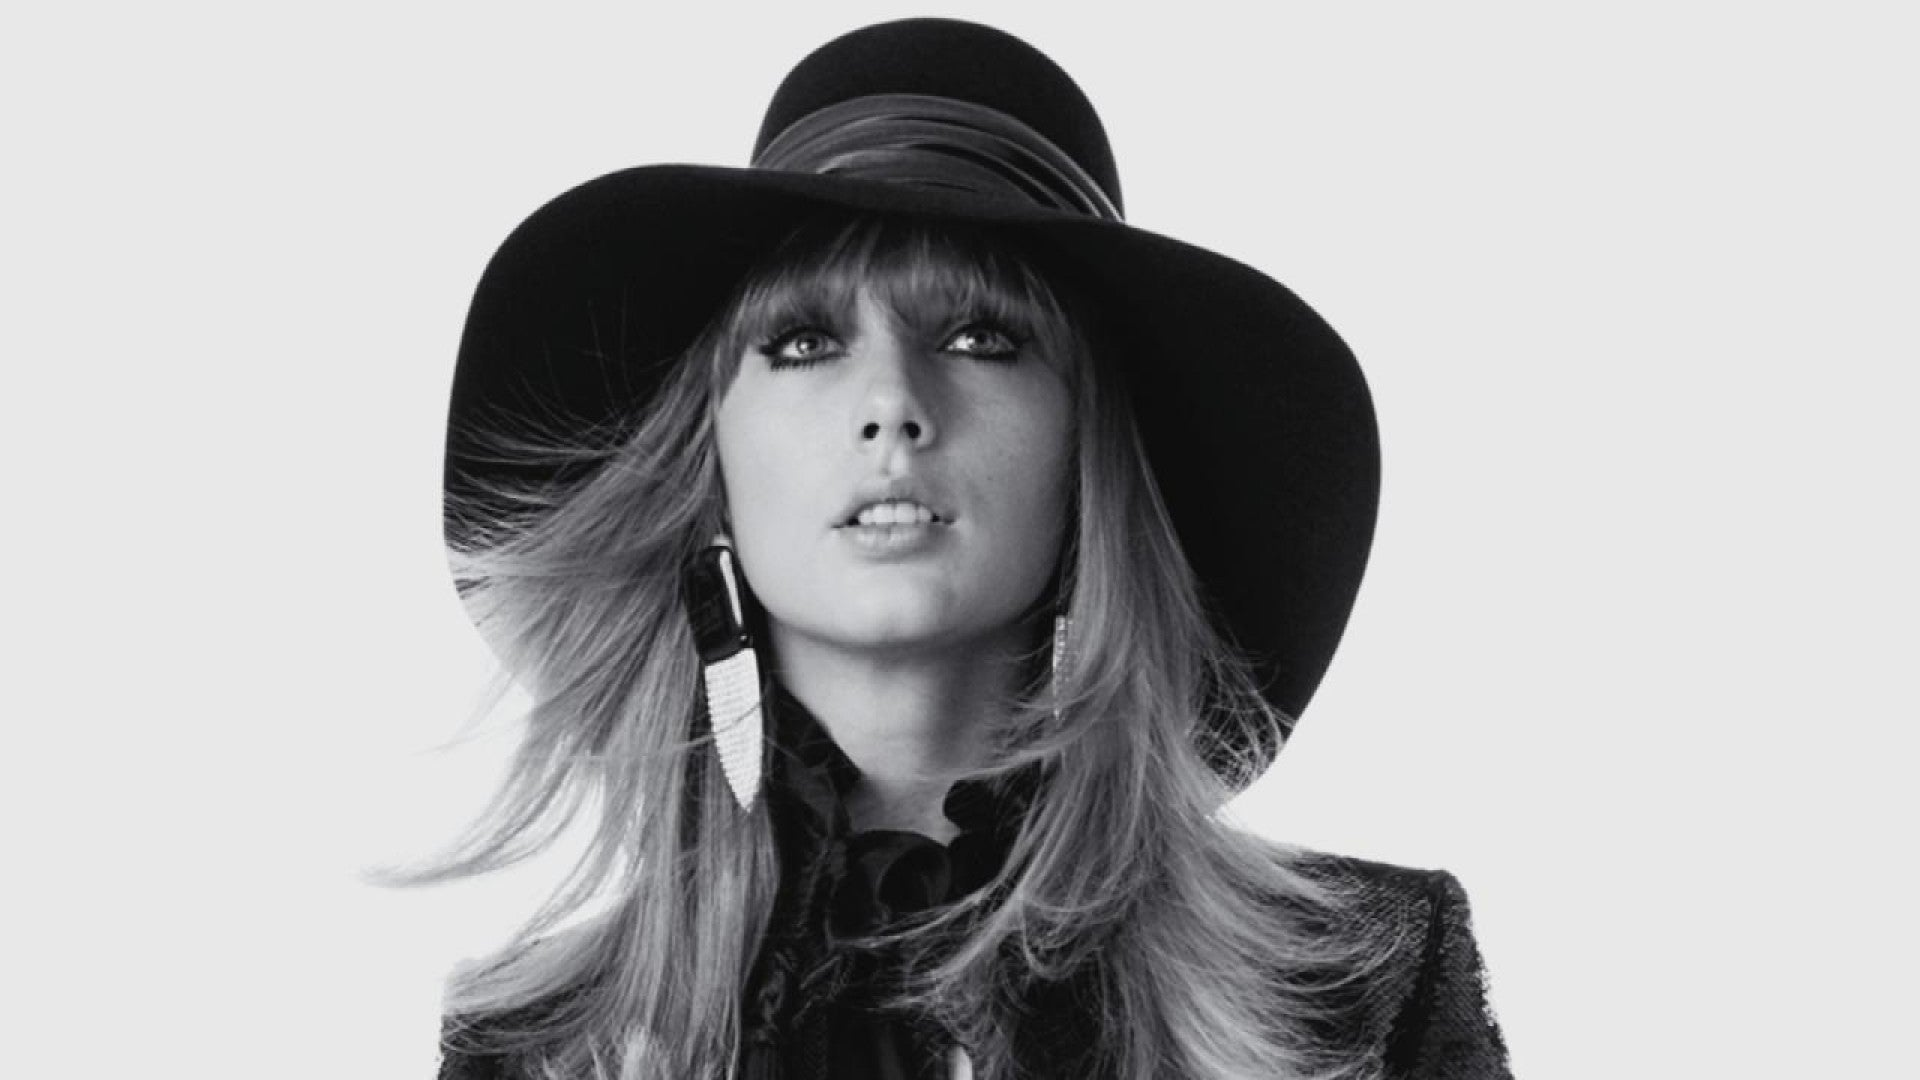 Taylor Swift Talks Her Muses And Songwriting Process In New Rocker Cover Shoot Entertainment Tonight